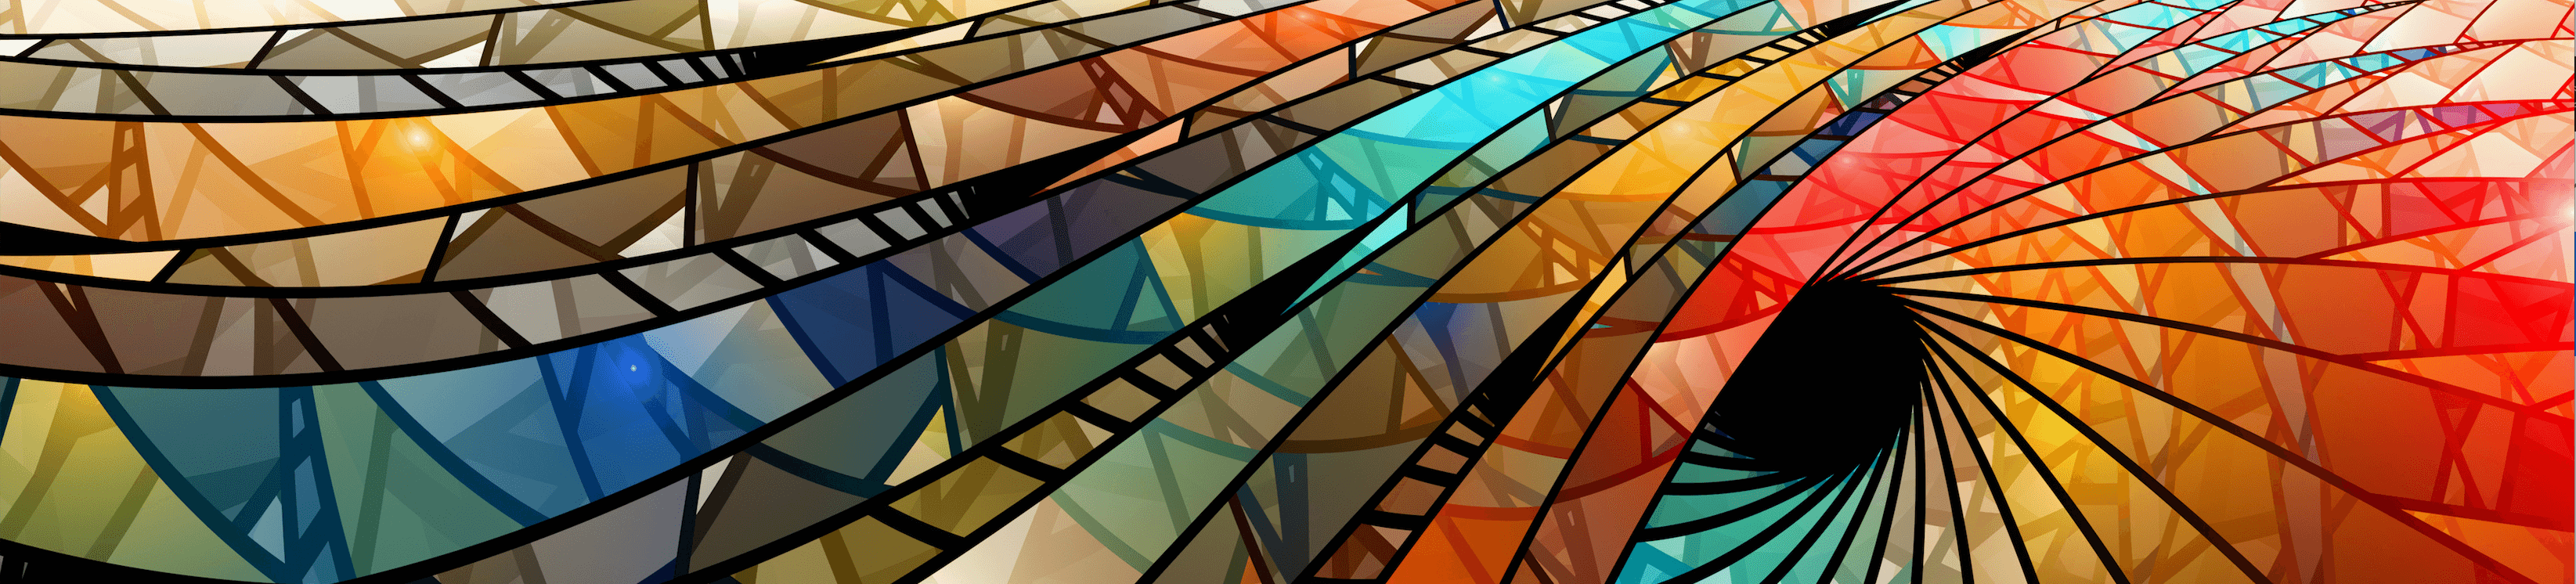 Vibrant, colorful, stained glass